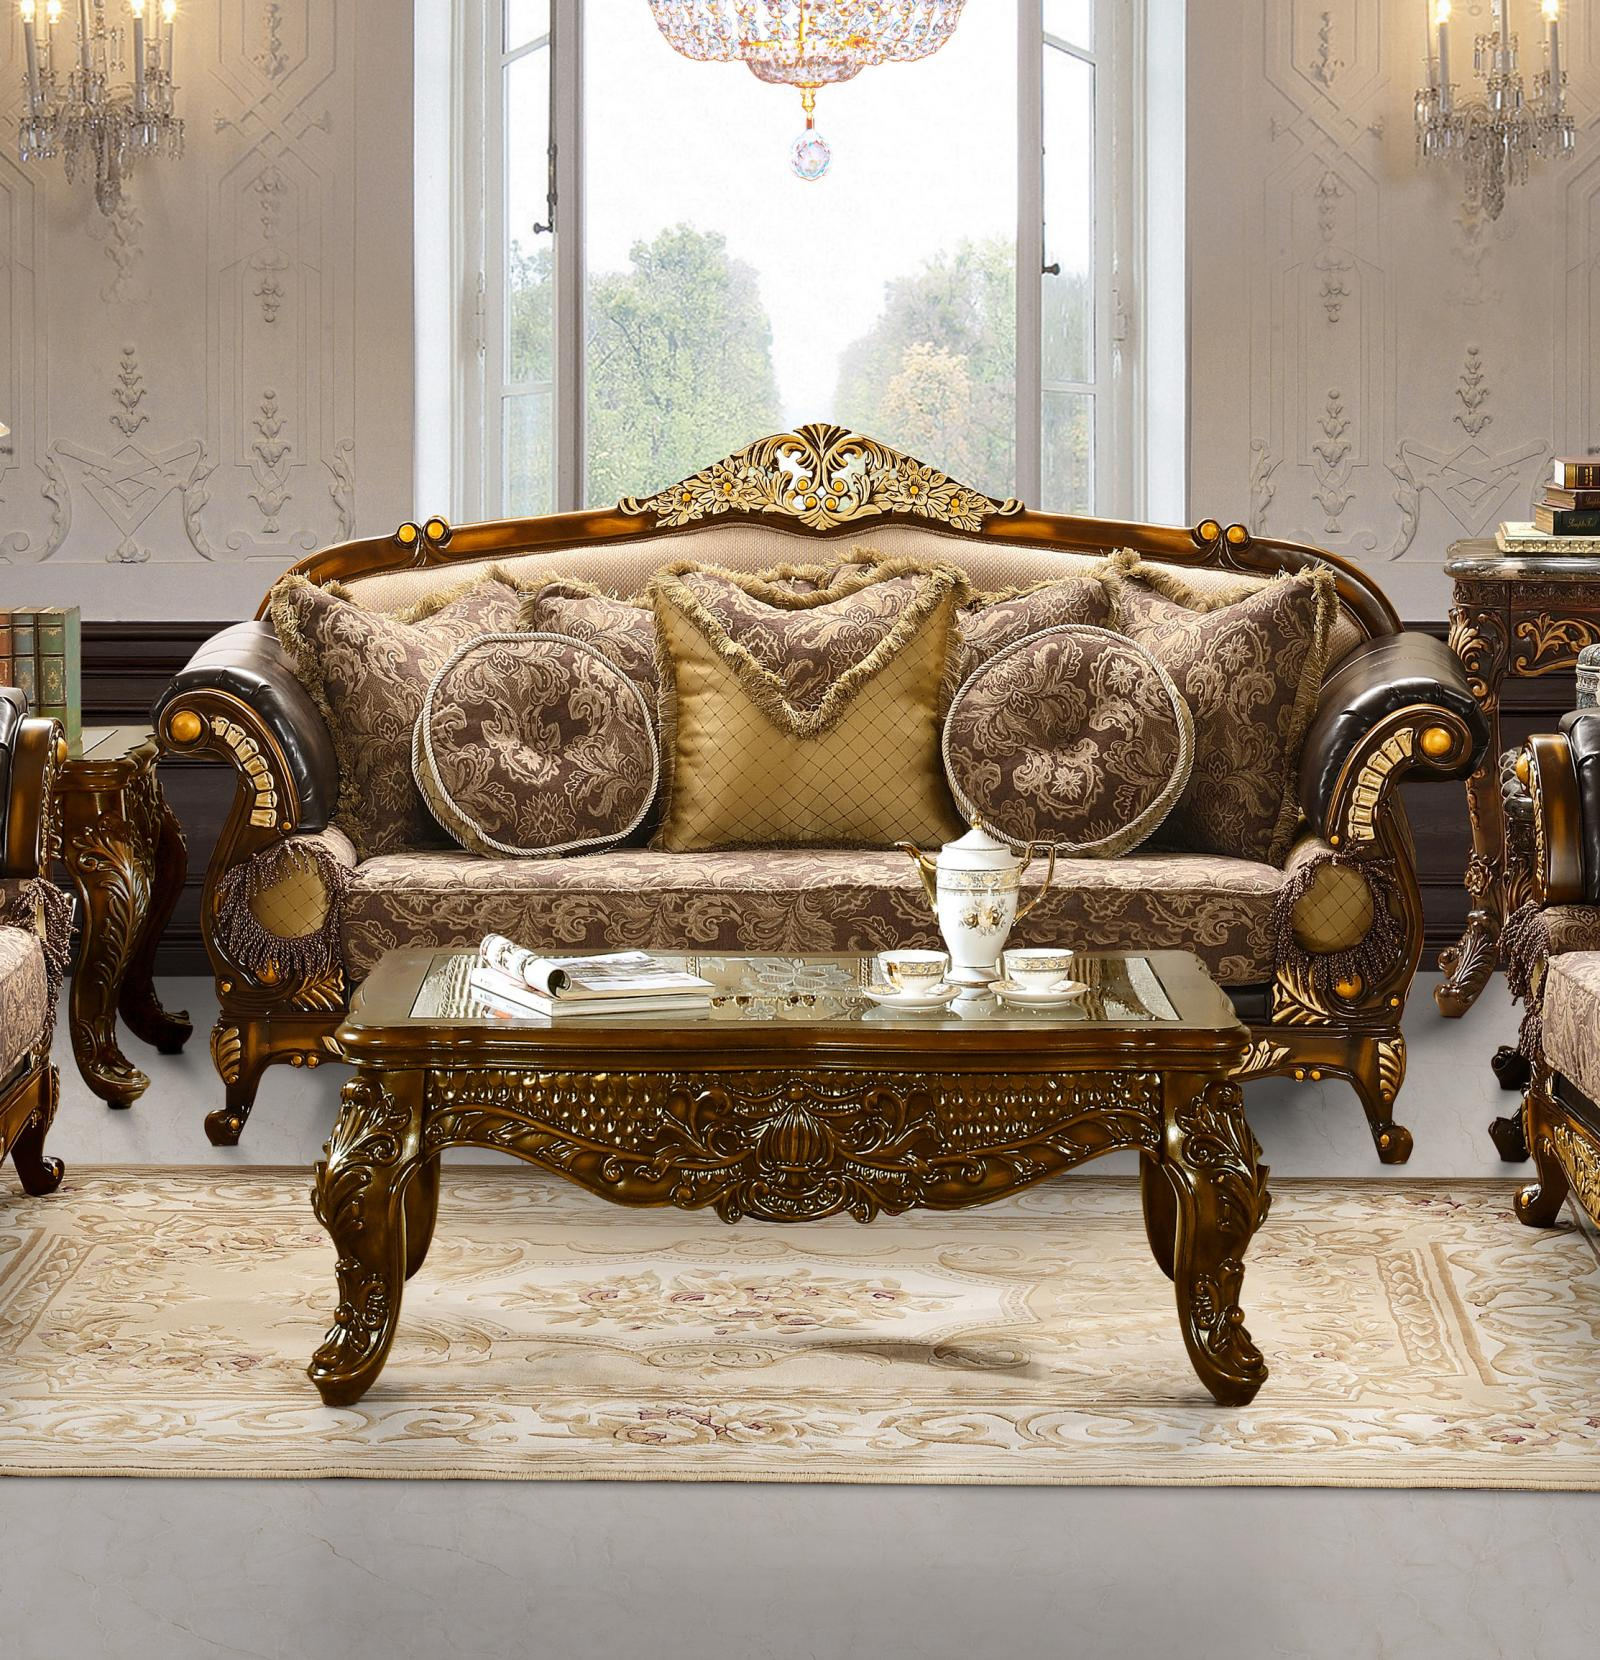 Traditional Victorian Royal HD-26 Sofa in Espresso by Homey Design